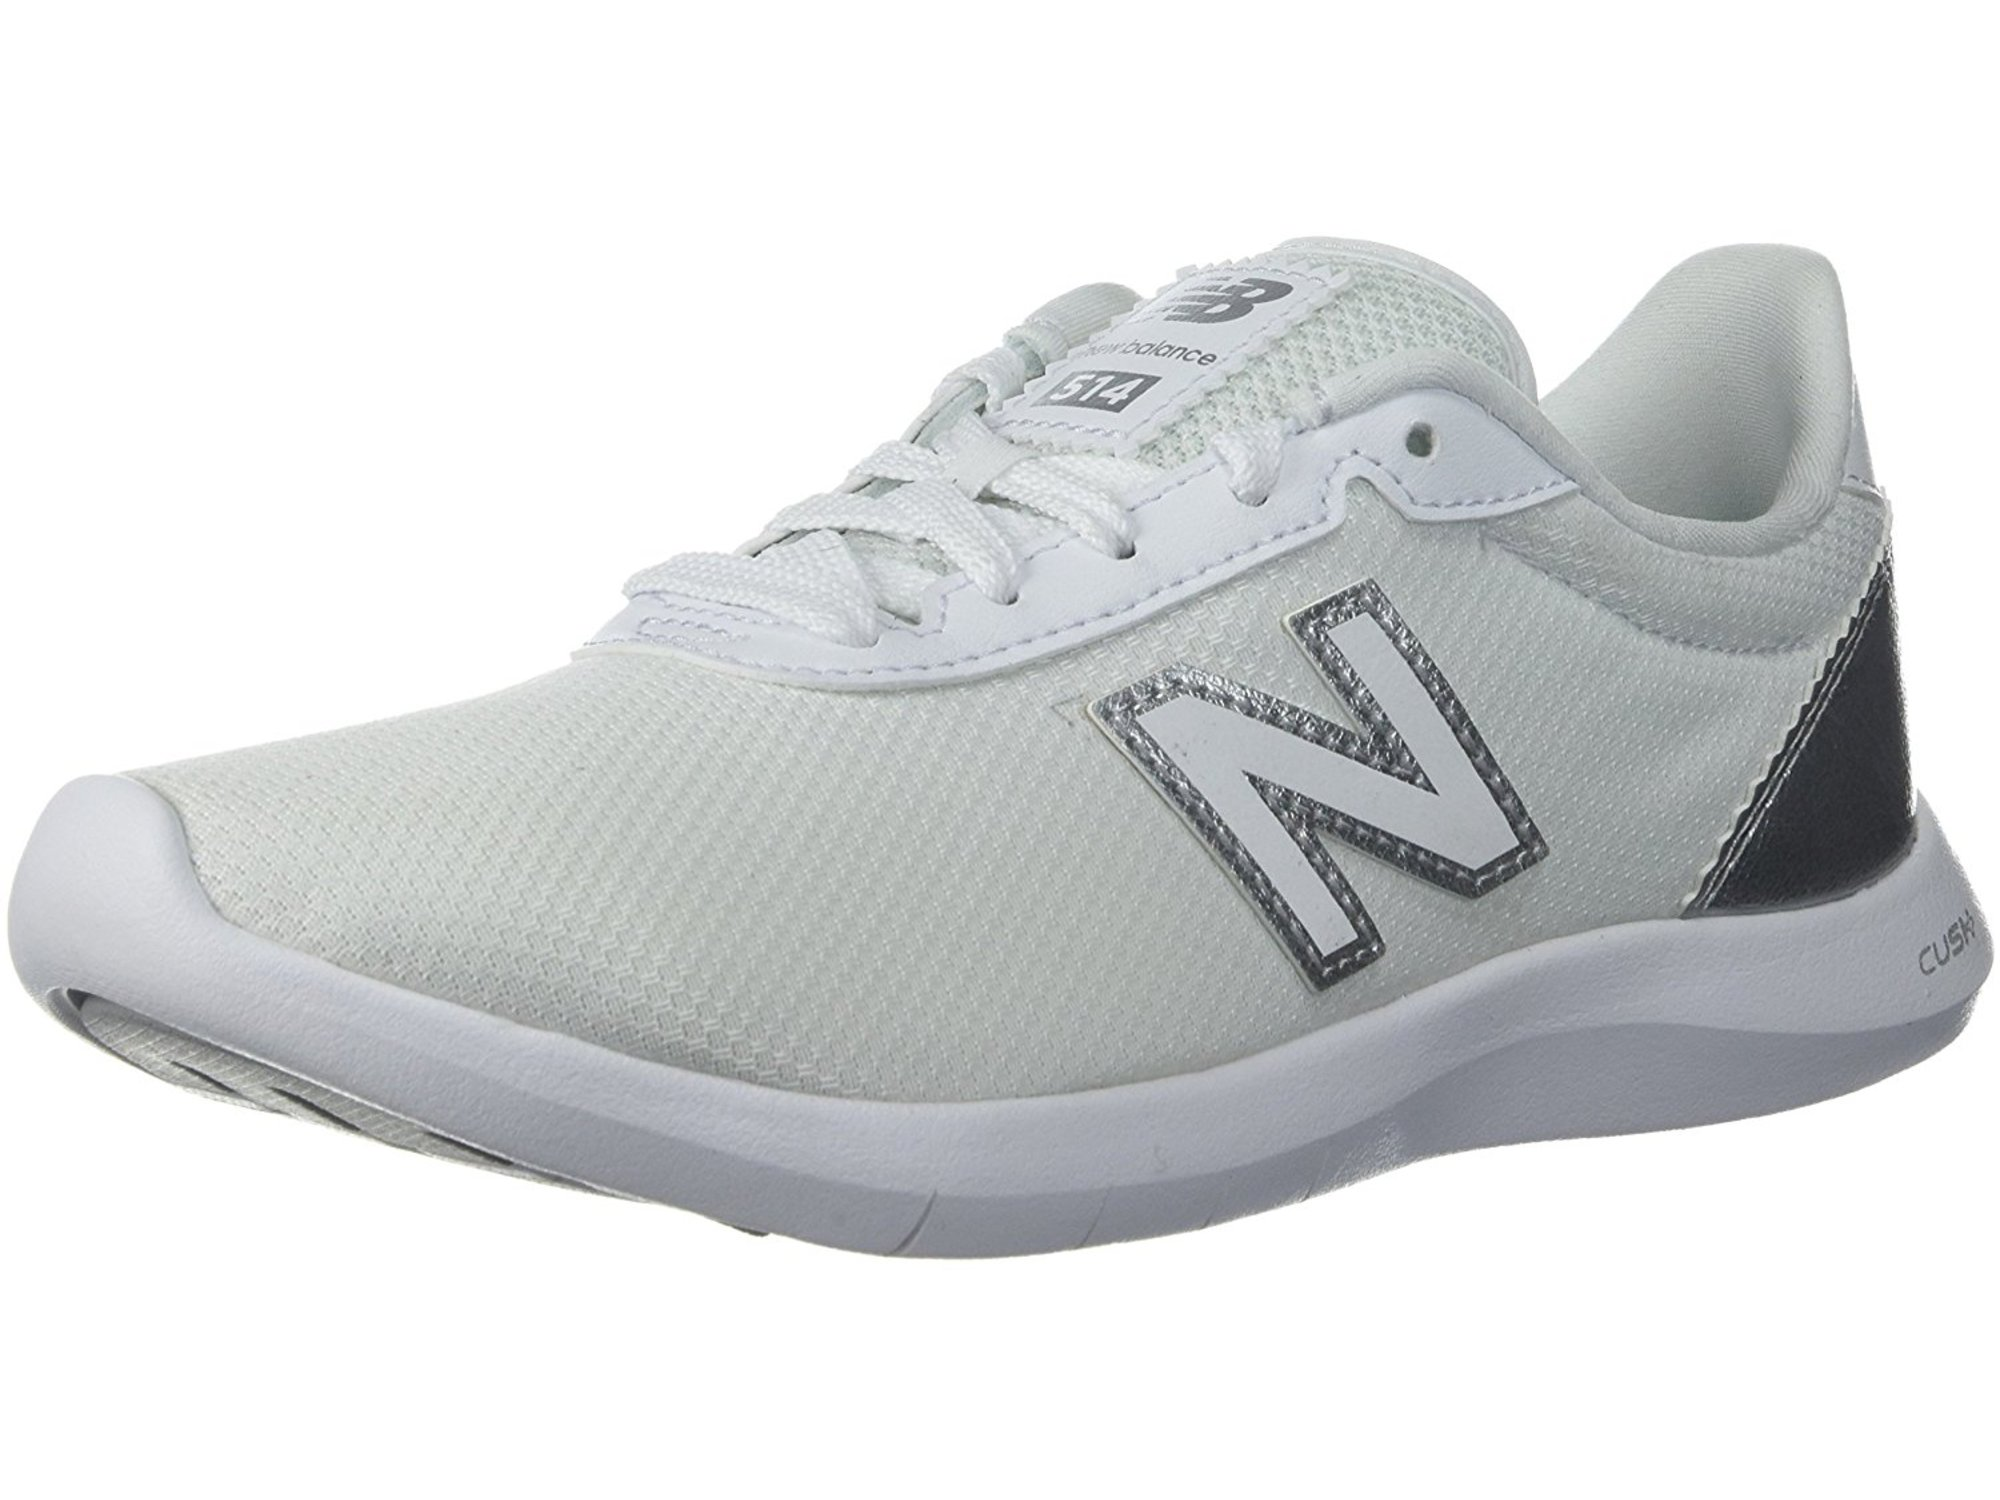 New Balance Womens Wa514dm Low Top Lace Up Running Sneaker by New Balance